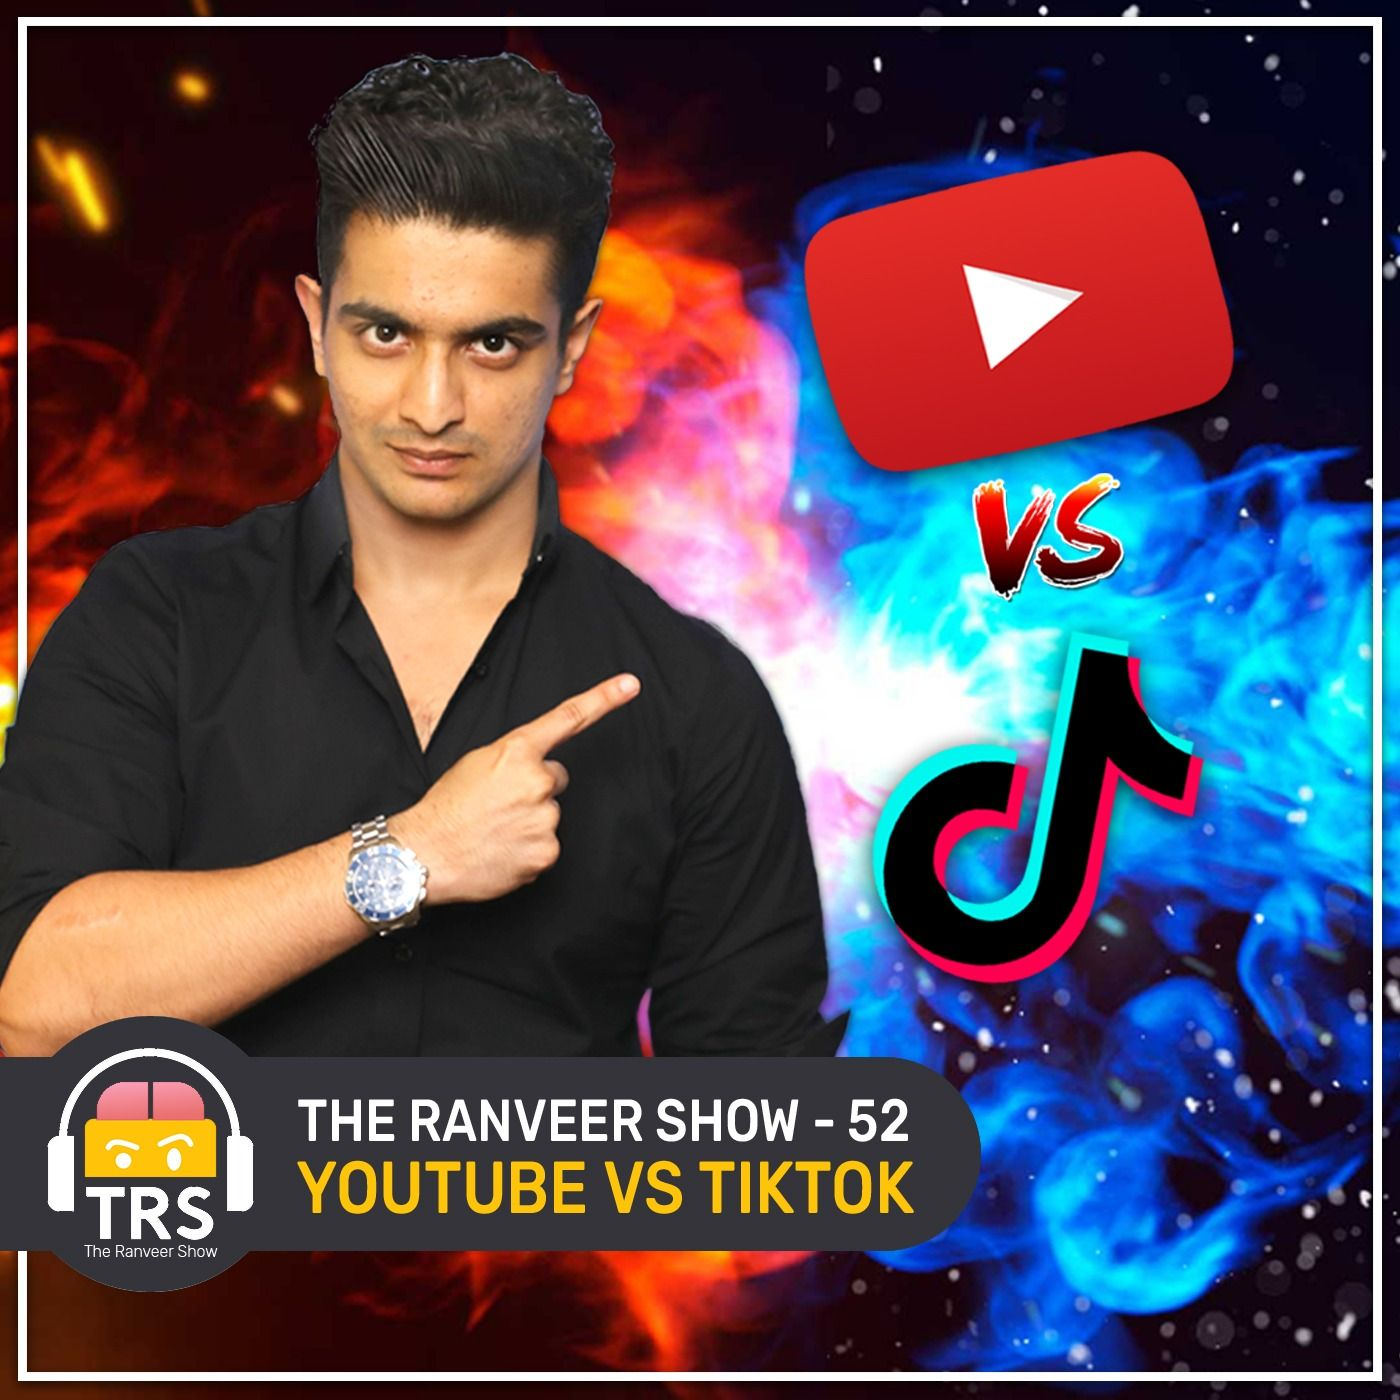 YOUTUBE VS TIKTOK - Who Is The Real LOSER? | The Ranveer Show 52